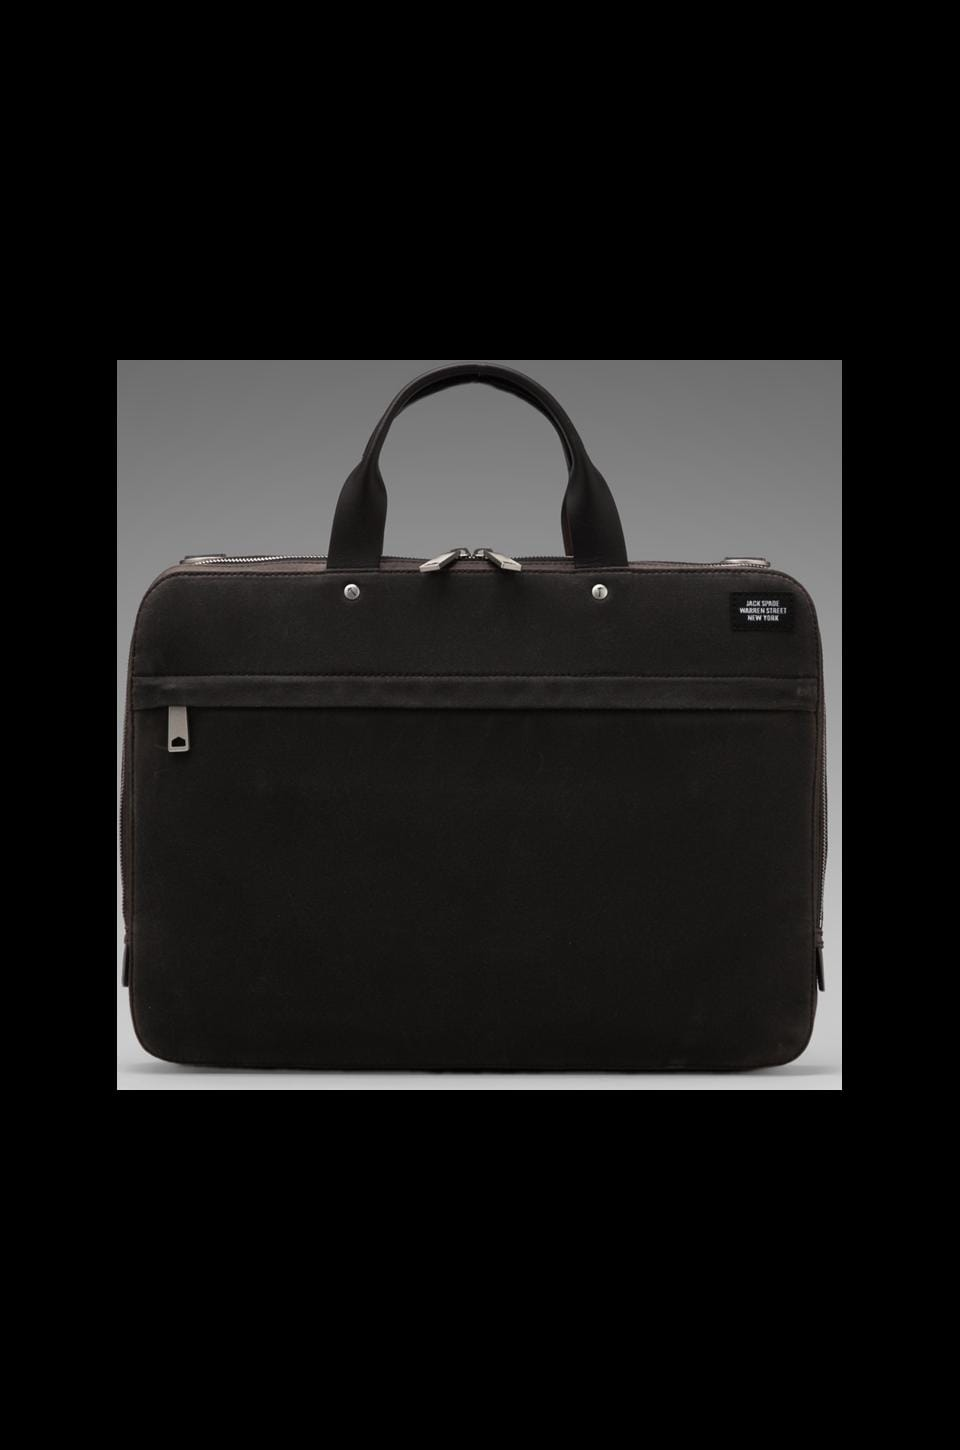 Jack Spade Waxwear Slim Brief in Chocolate/Navy